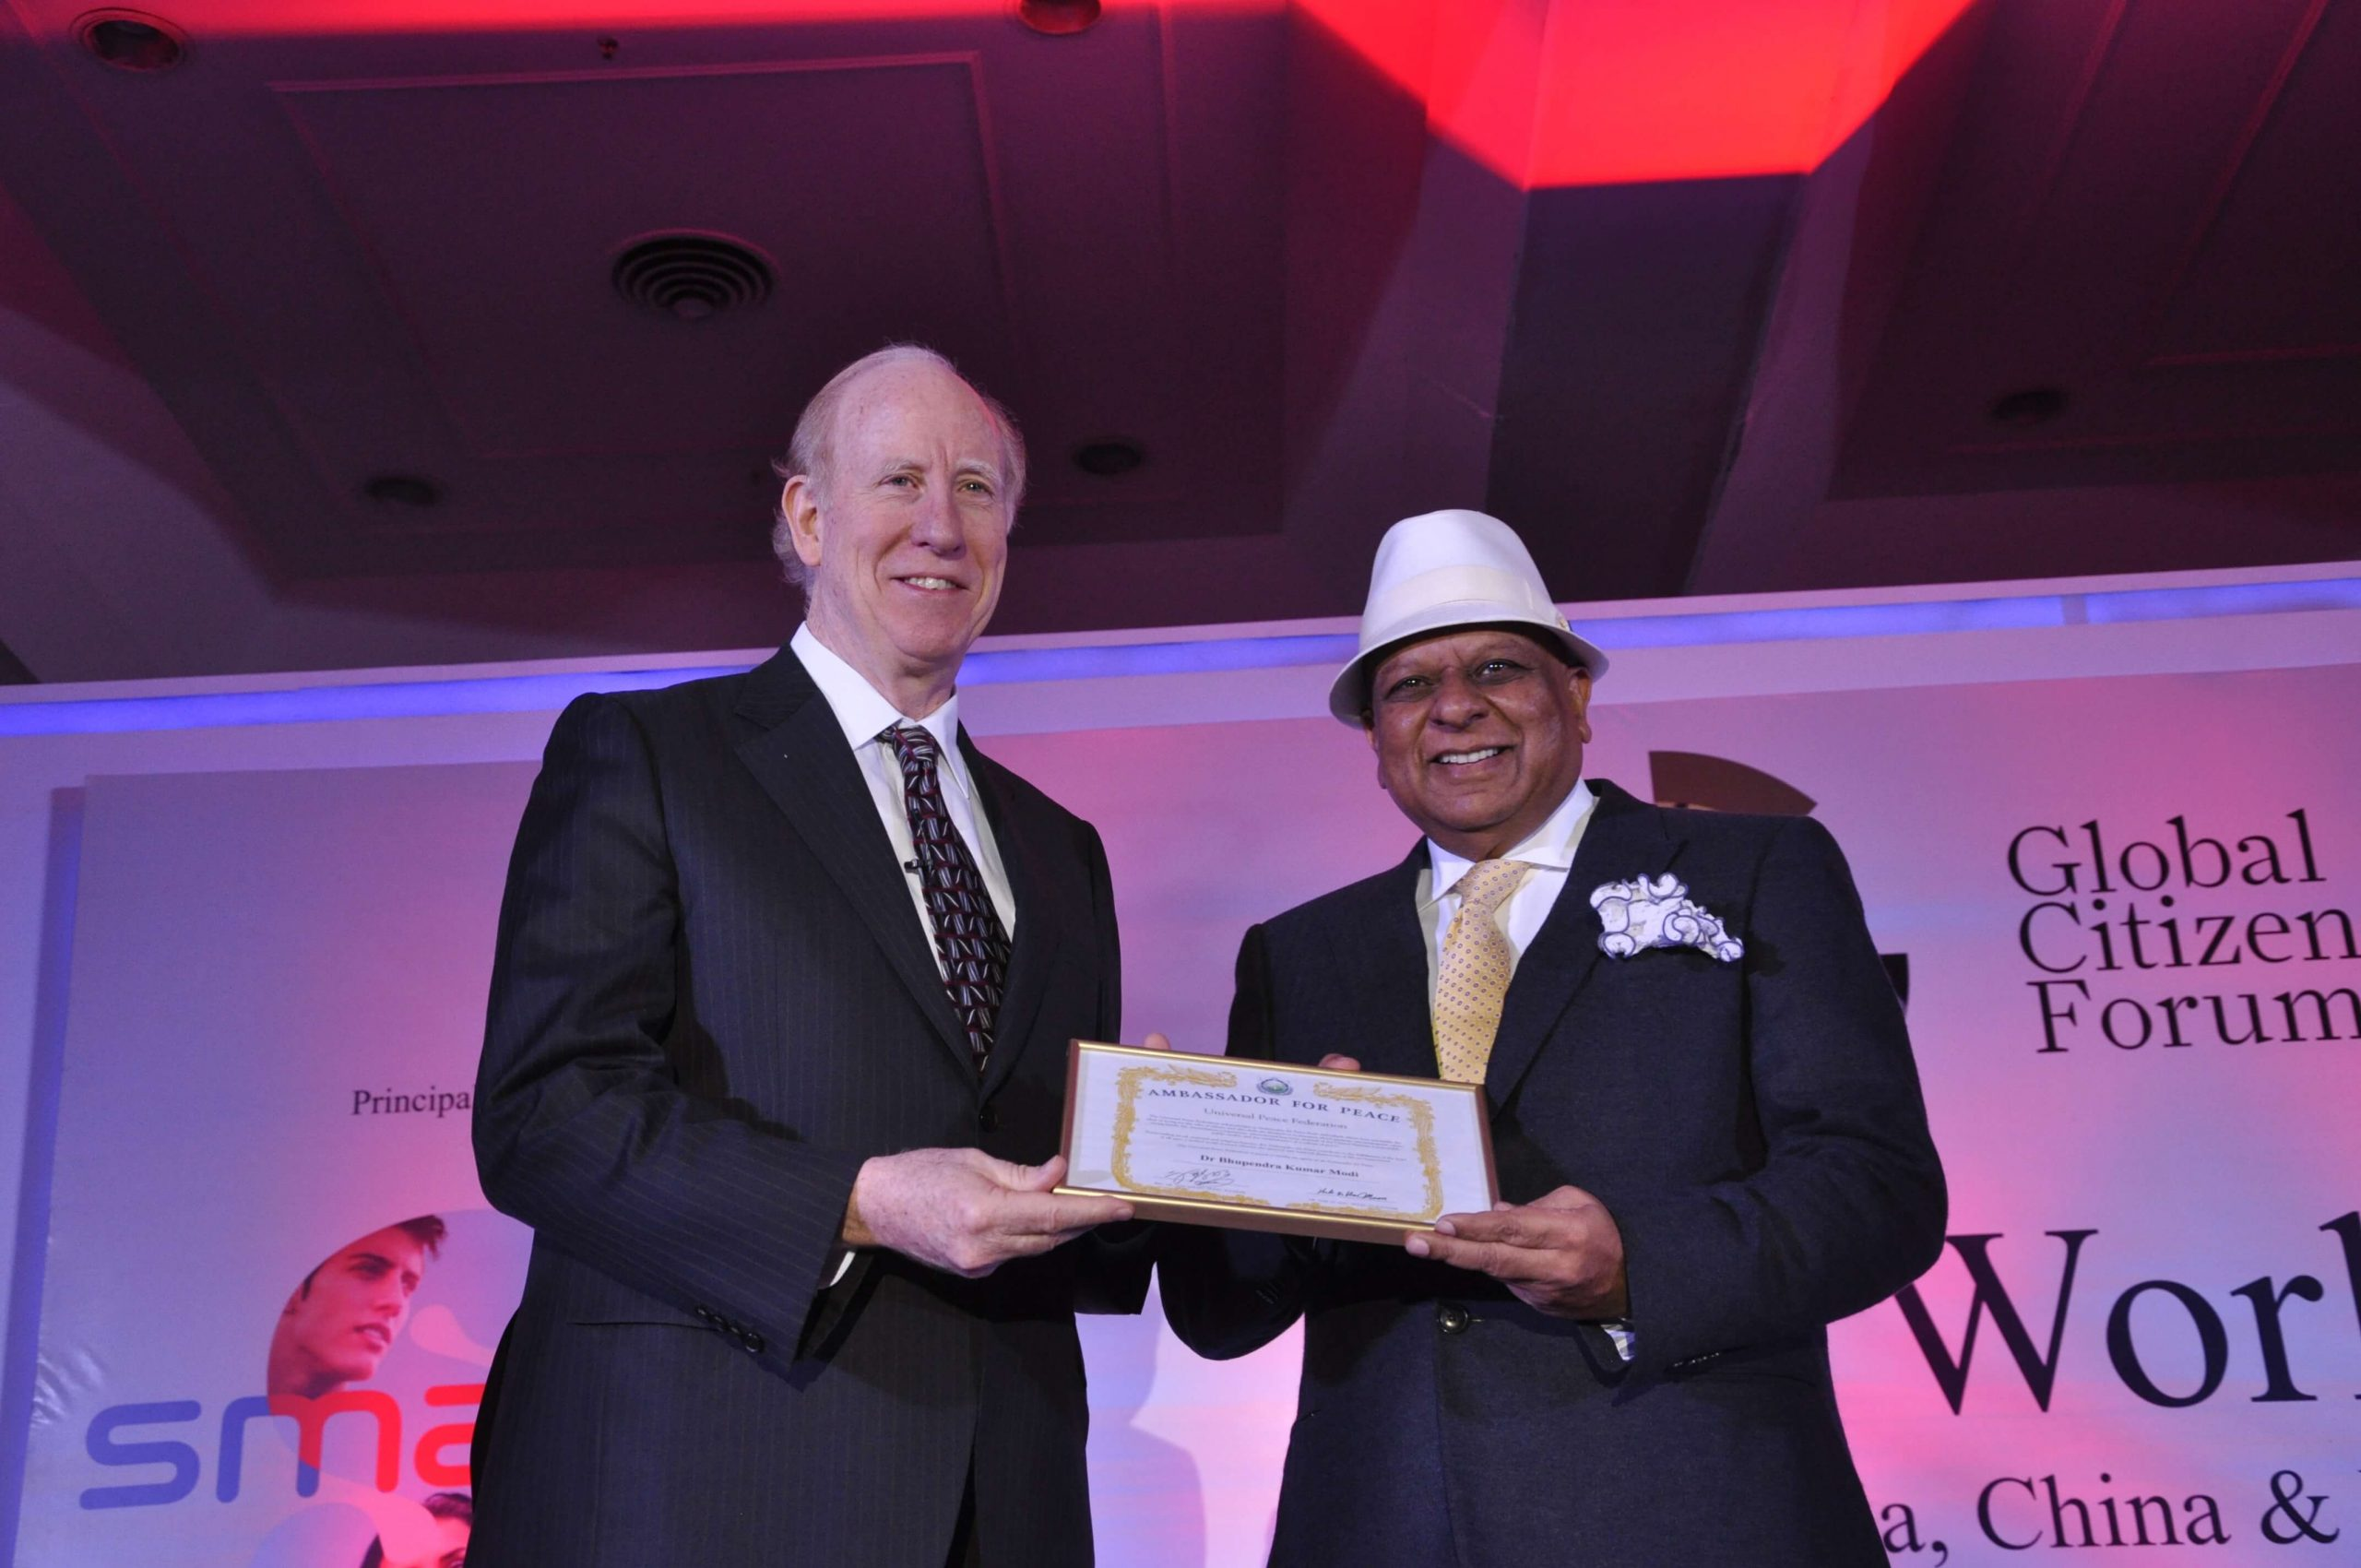 Dr. M receives the Ambassador for Peace award by the Universal Peace Federation